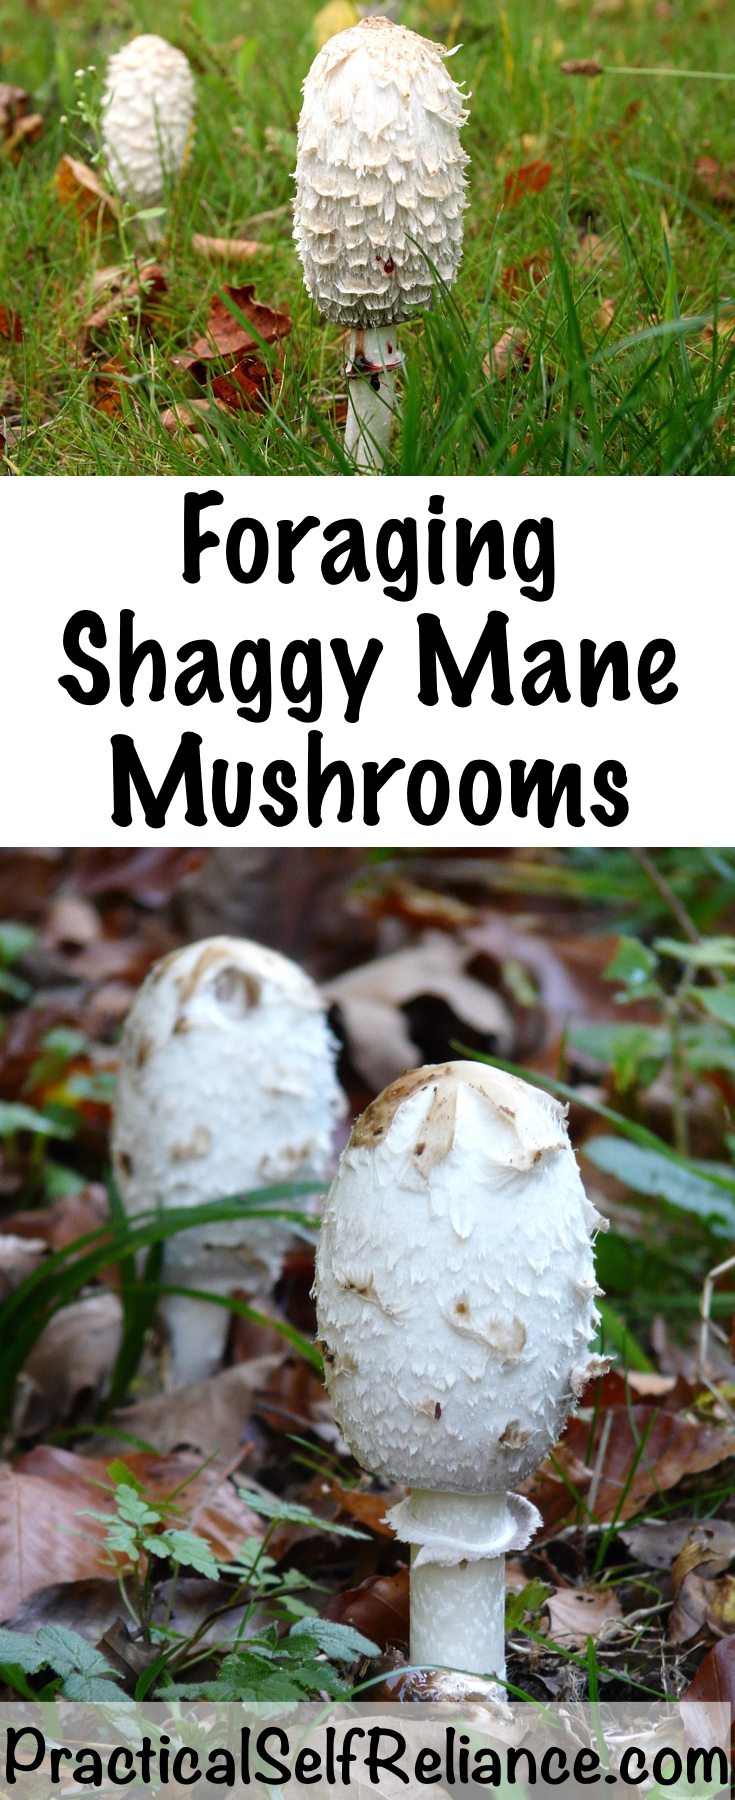 Foraging Shaggy Mane Mushrooms ~ How to identify and use this common wild mushroom